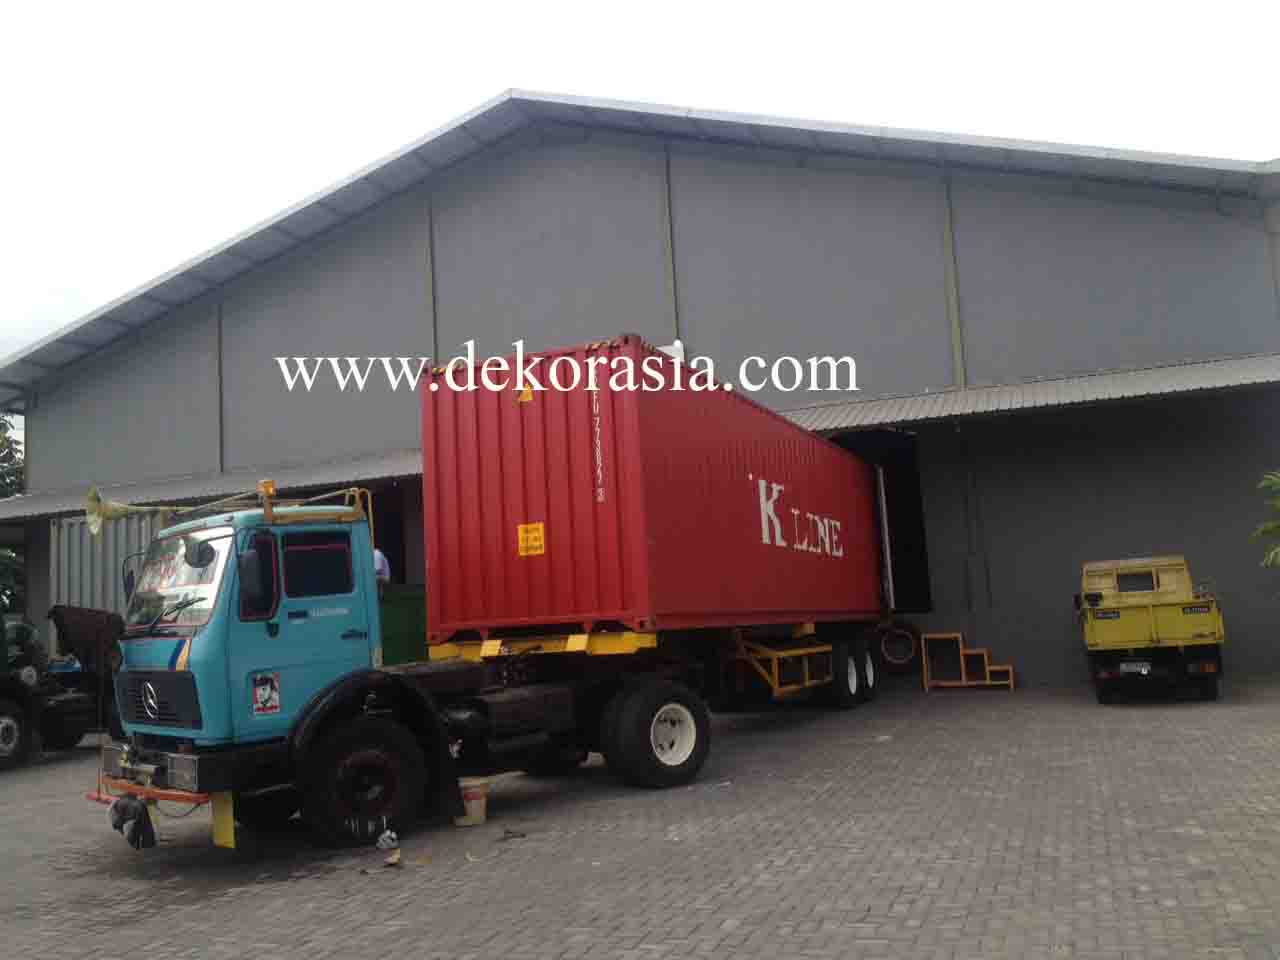 WAREHOUSE AT KARYA MULIA CARGO